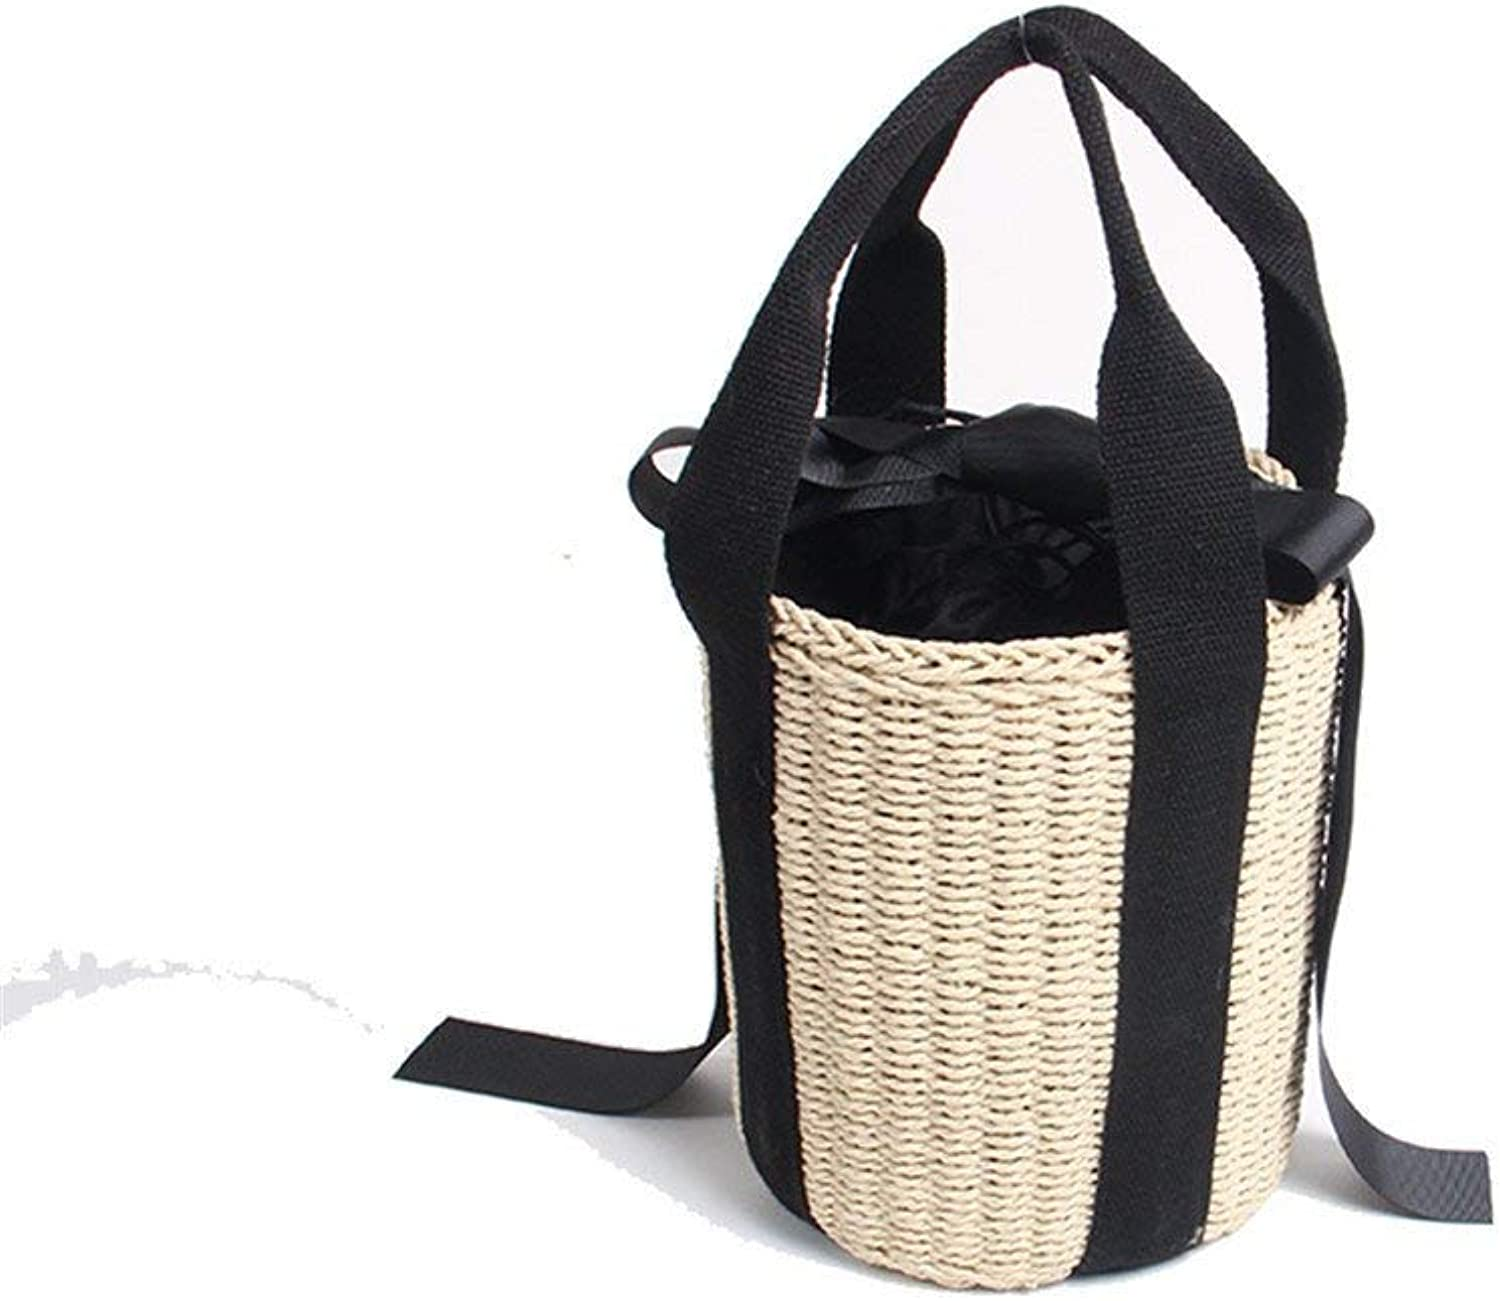 Evening Bag Straw Bag Woven Bag Beach Bag Slung Bucket Small Bag Simple Fashion Holiday Handbag Party Handbag